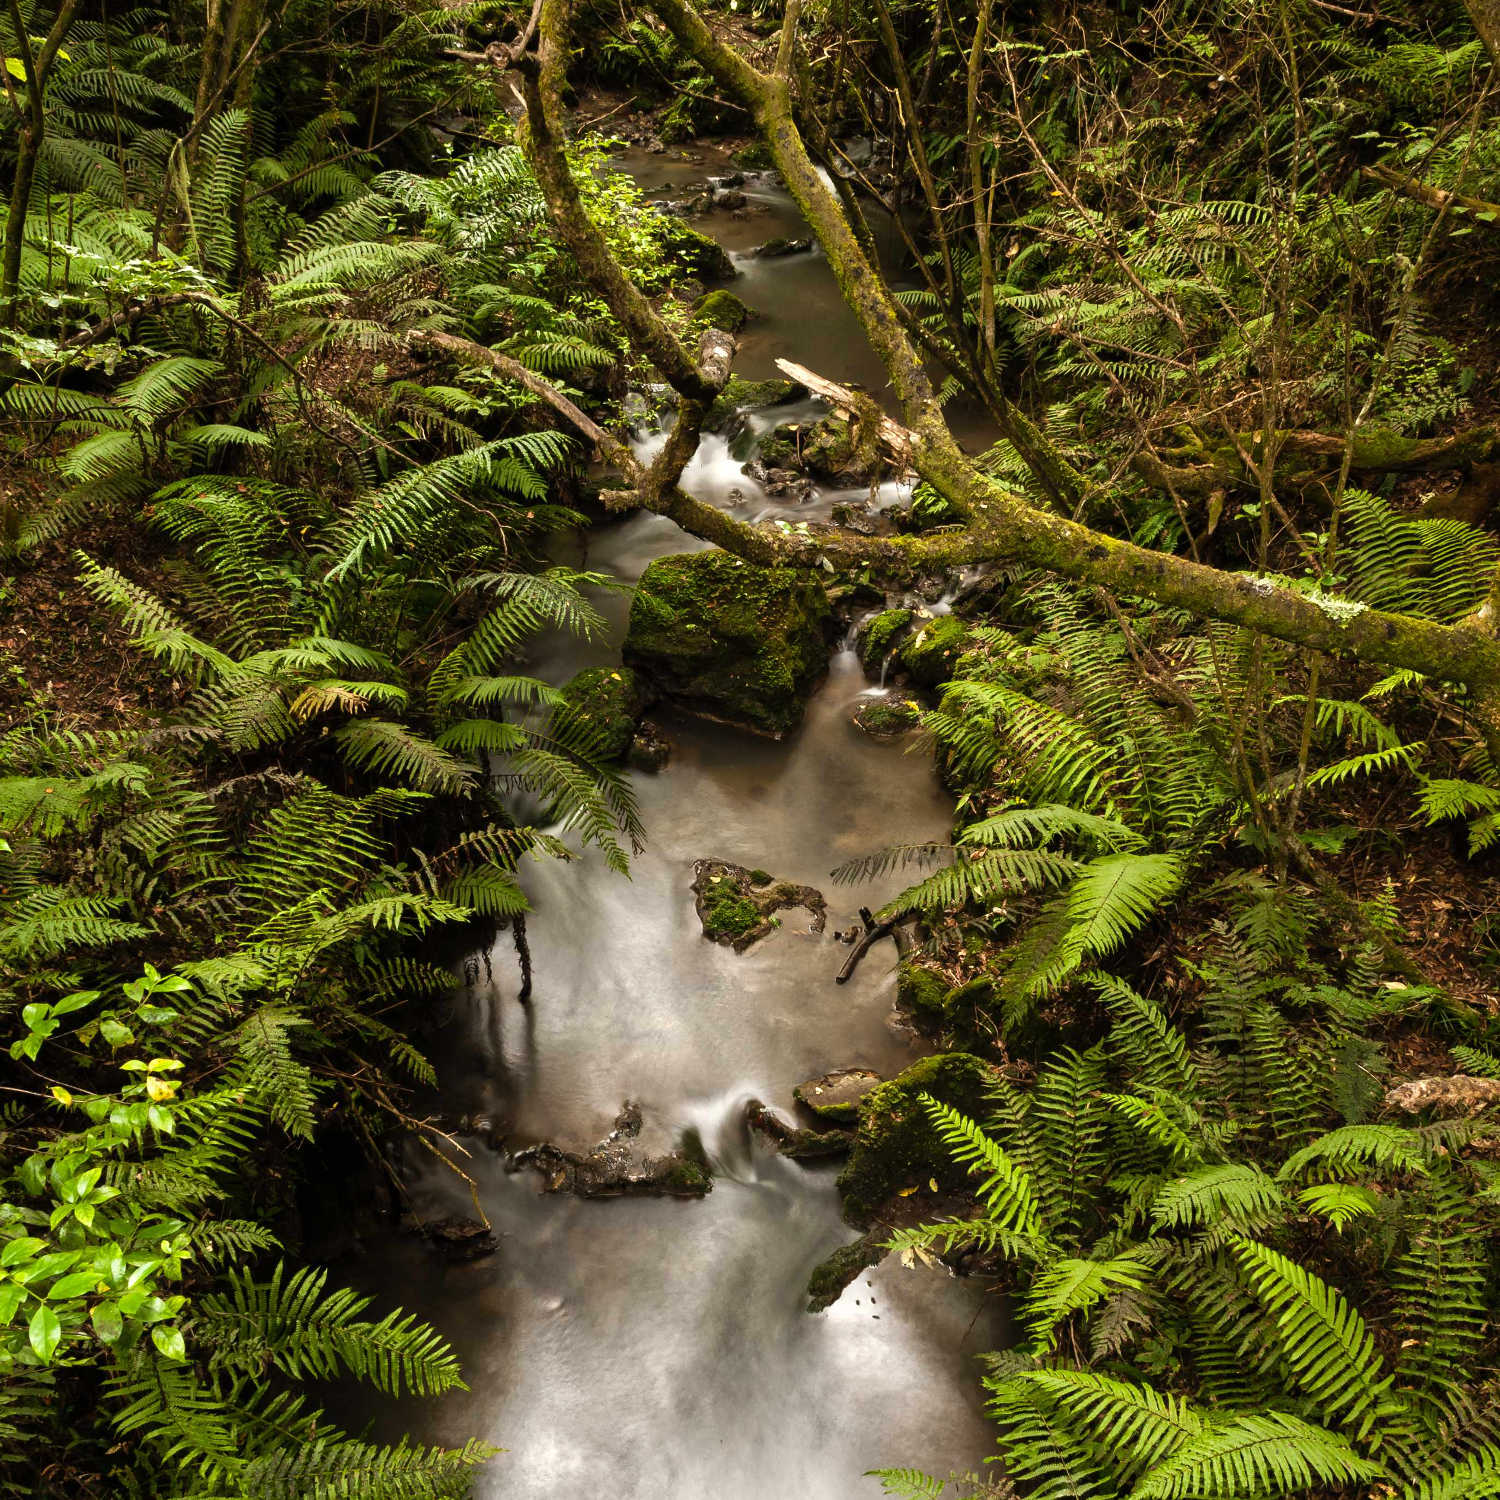 Kareaara stream in the White Pine Forest reserve Hawkes Bay New Zealand